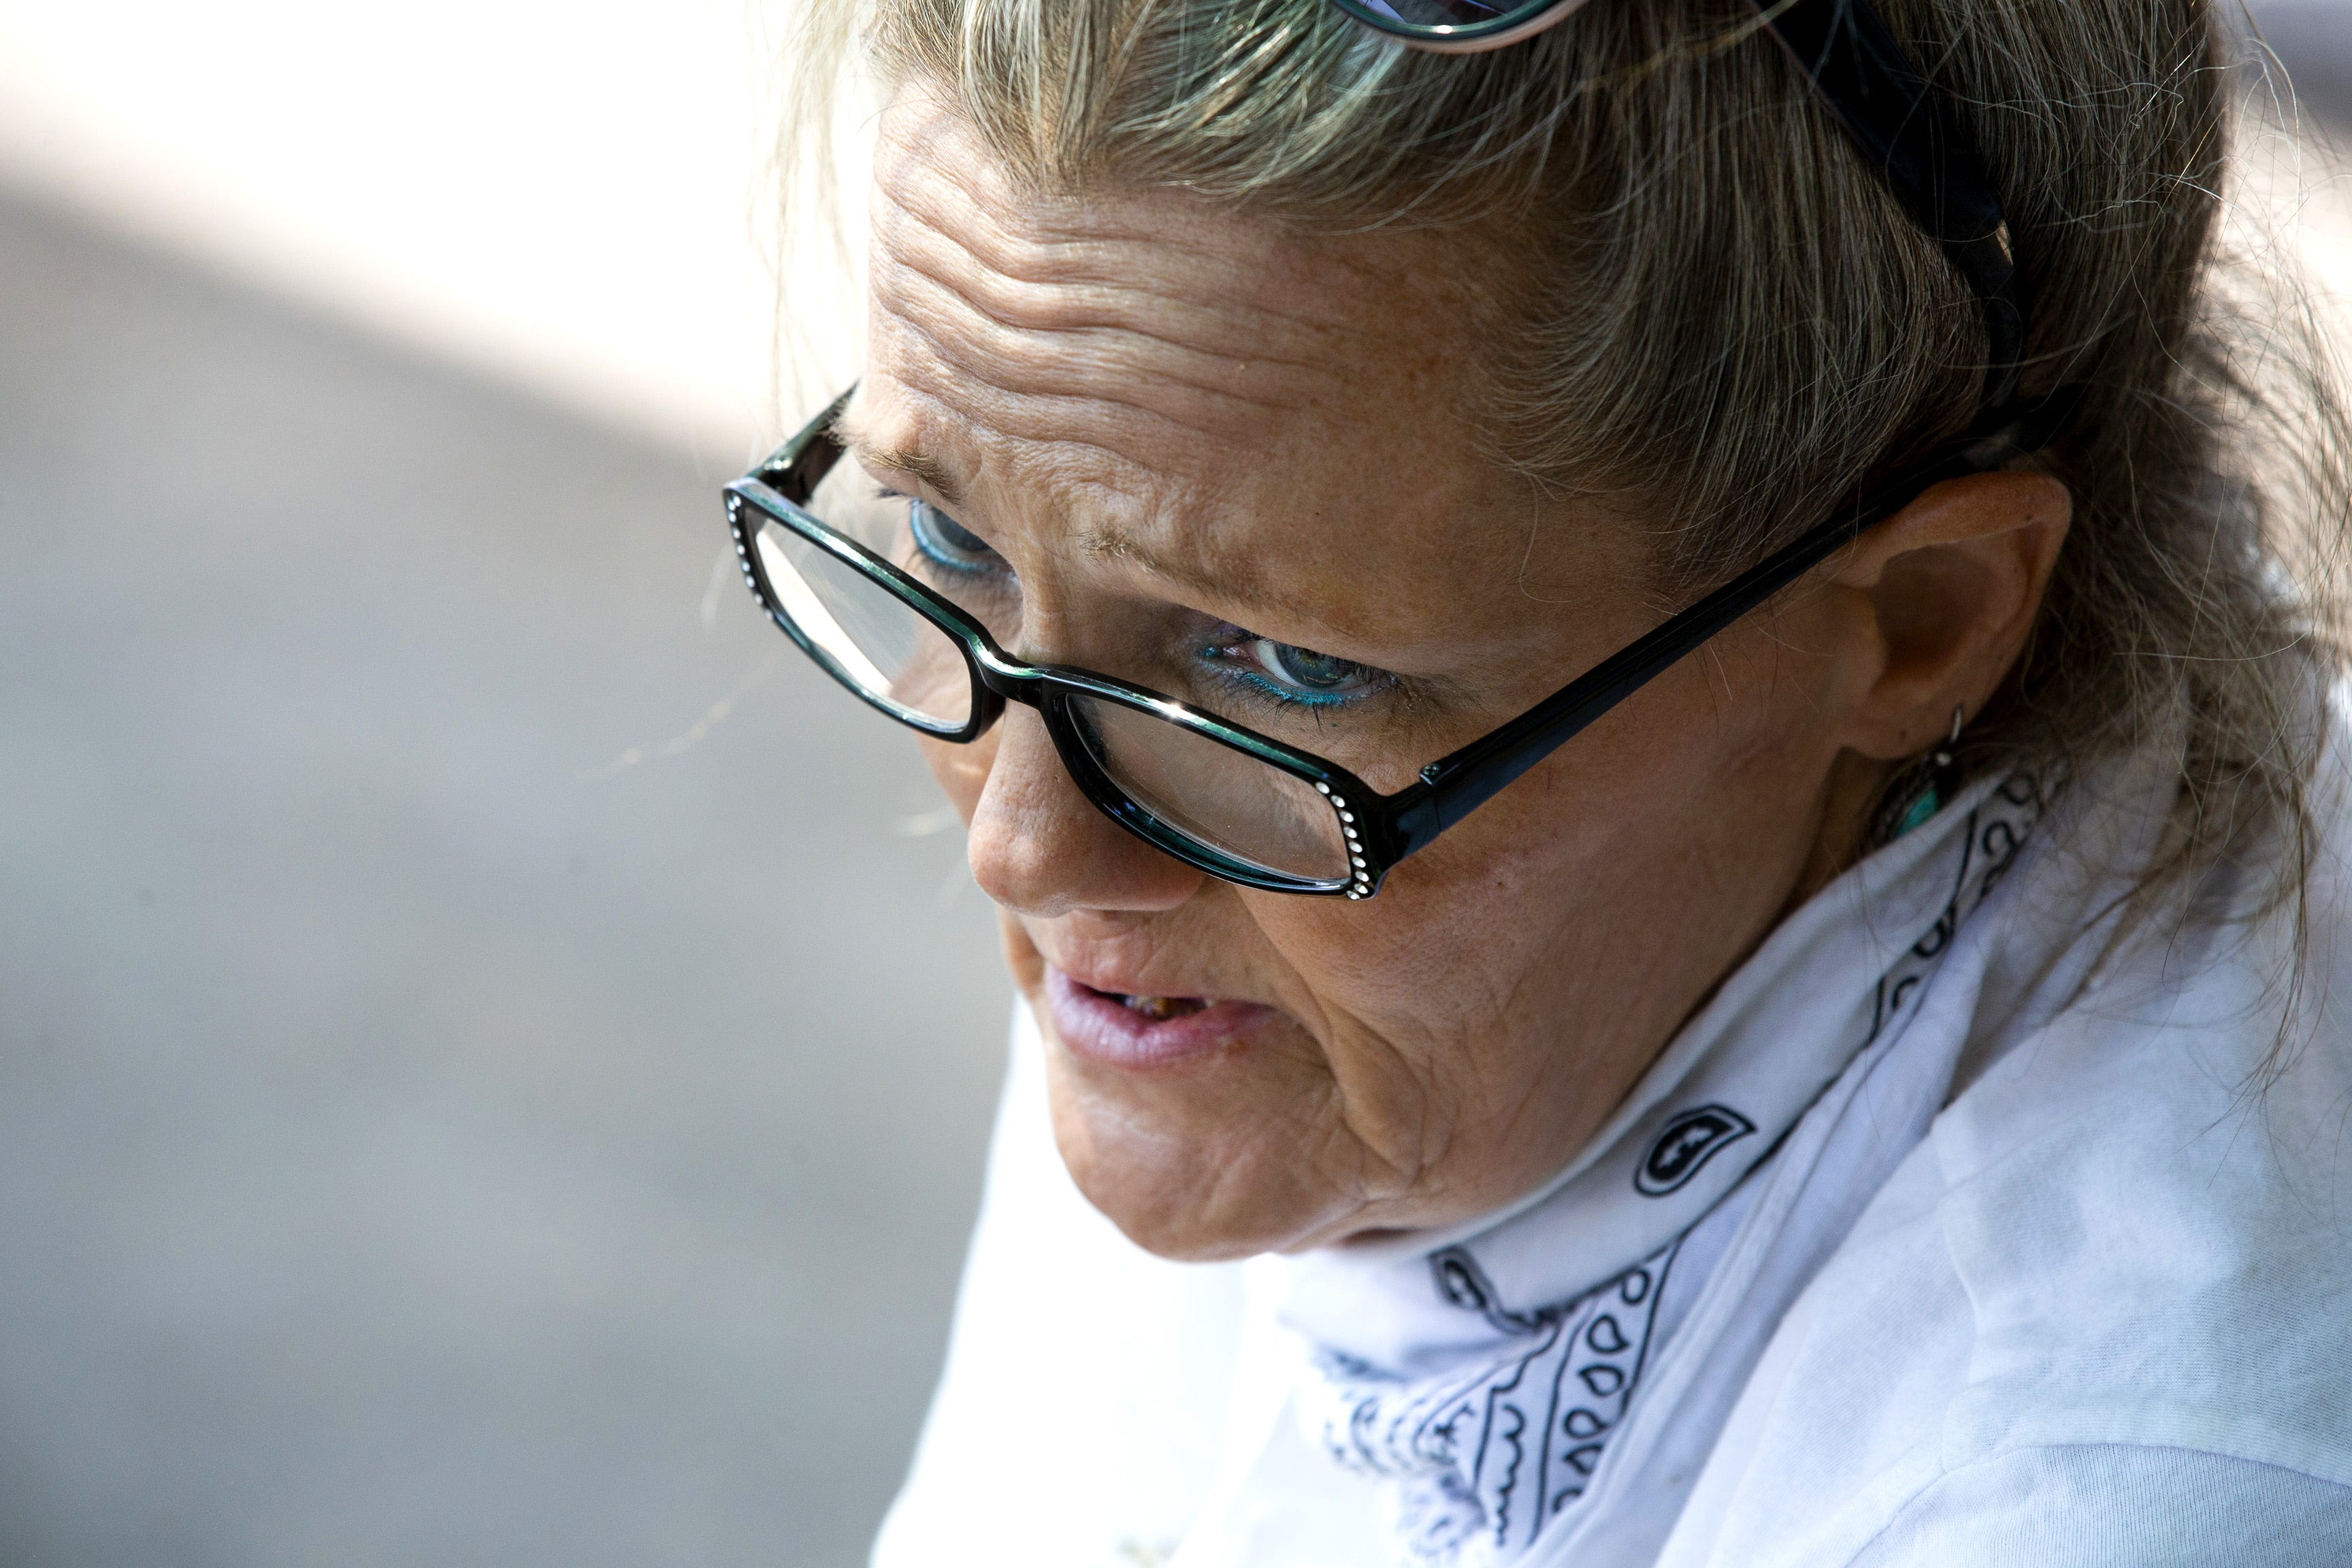 """Darlene Carchedi (seen June 30, 2020, at the Andre House in Phoenix) says she is not worried about catching COVID-19 on the streets. """"I'm not afraid much of anything,"""" she says. """"For 54 years God's taken care of me."""""""